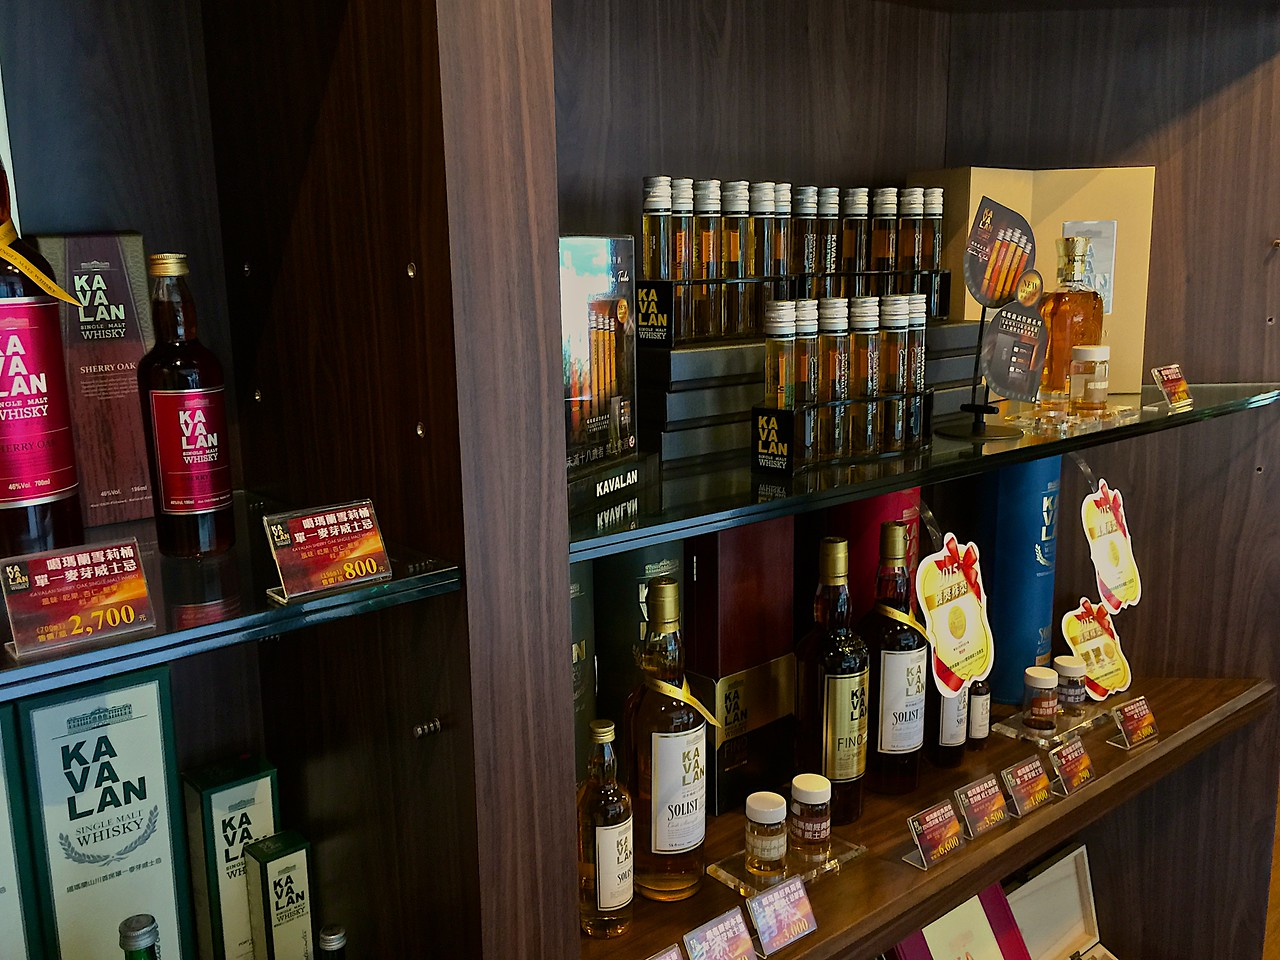 One variety of their Single Malt whisky was judged best whisky at the World Whisky Awards and has been acclaimed by many publications around the world as some of the best.